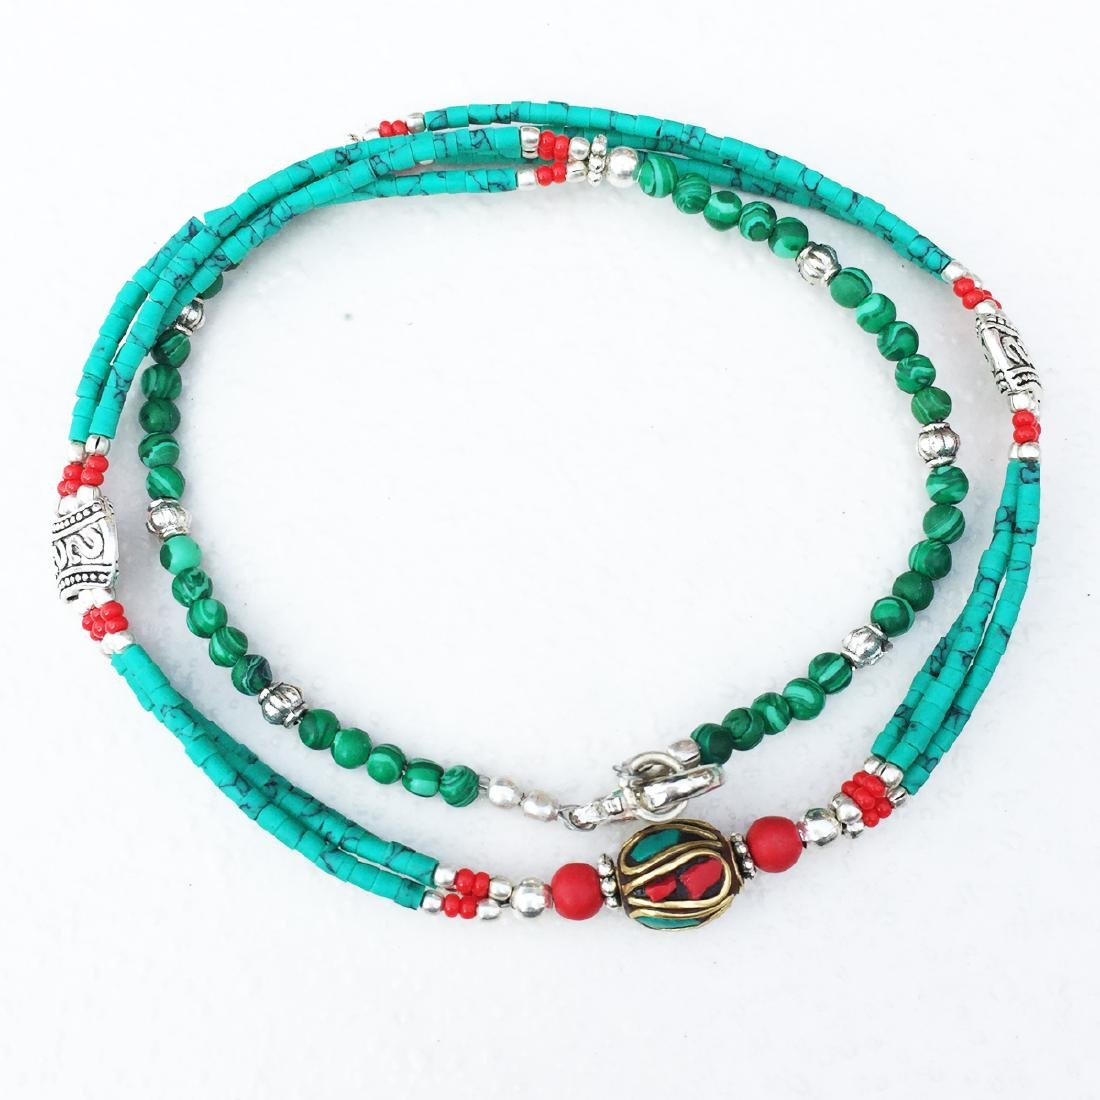 SINGLE STRAND TURQUOISE BEADED NECKLACE WITH BEAD